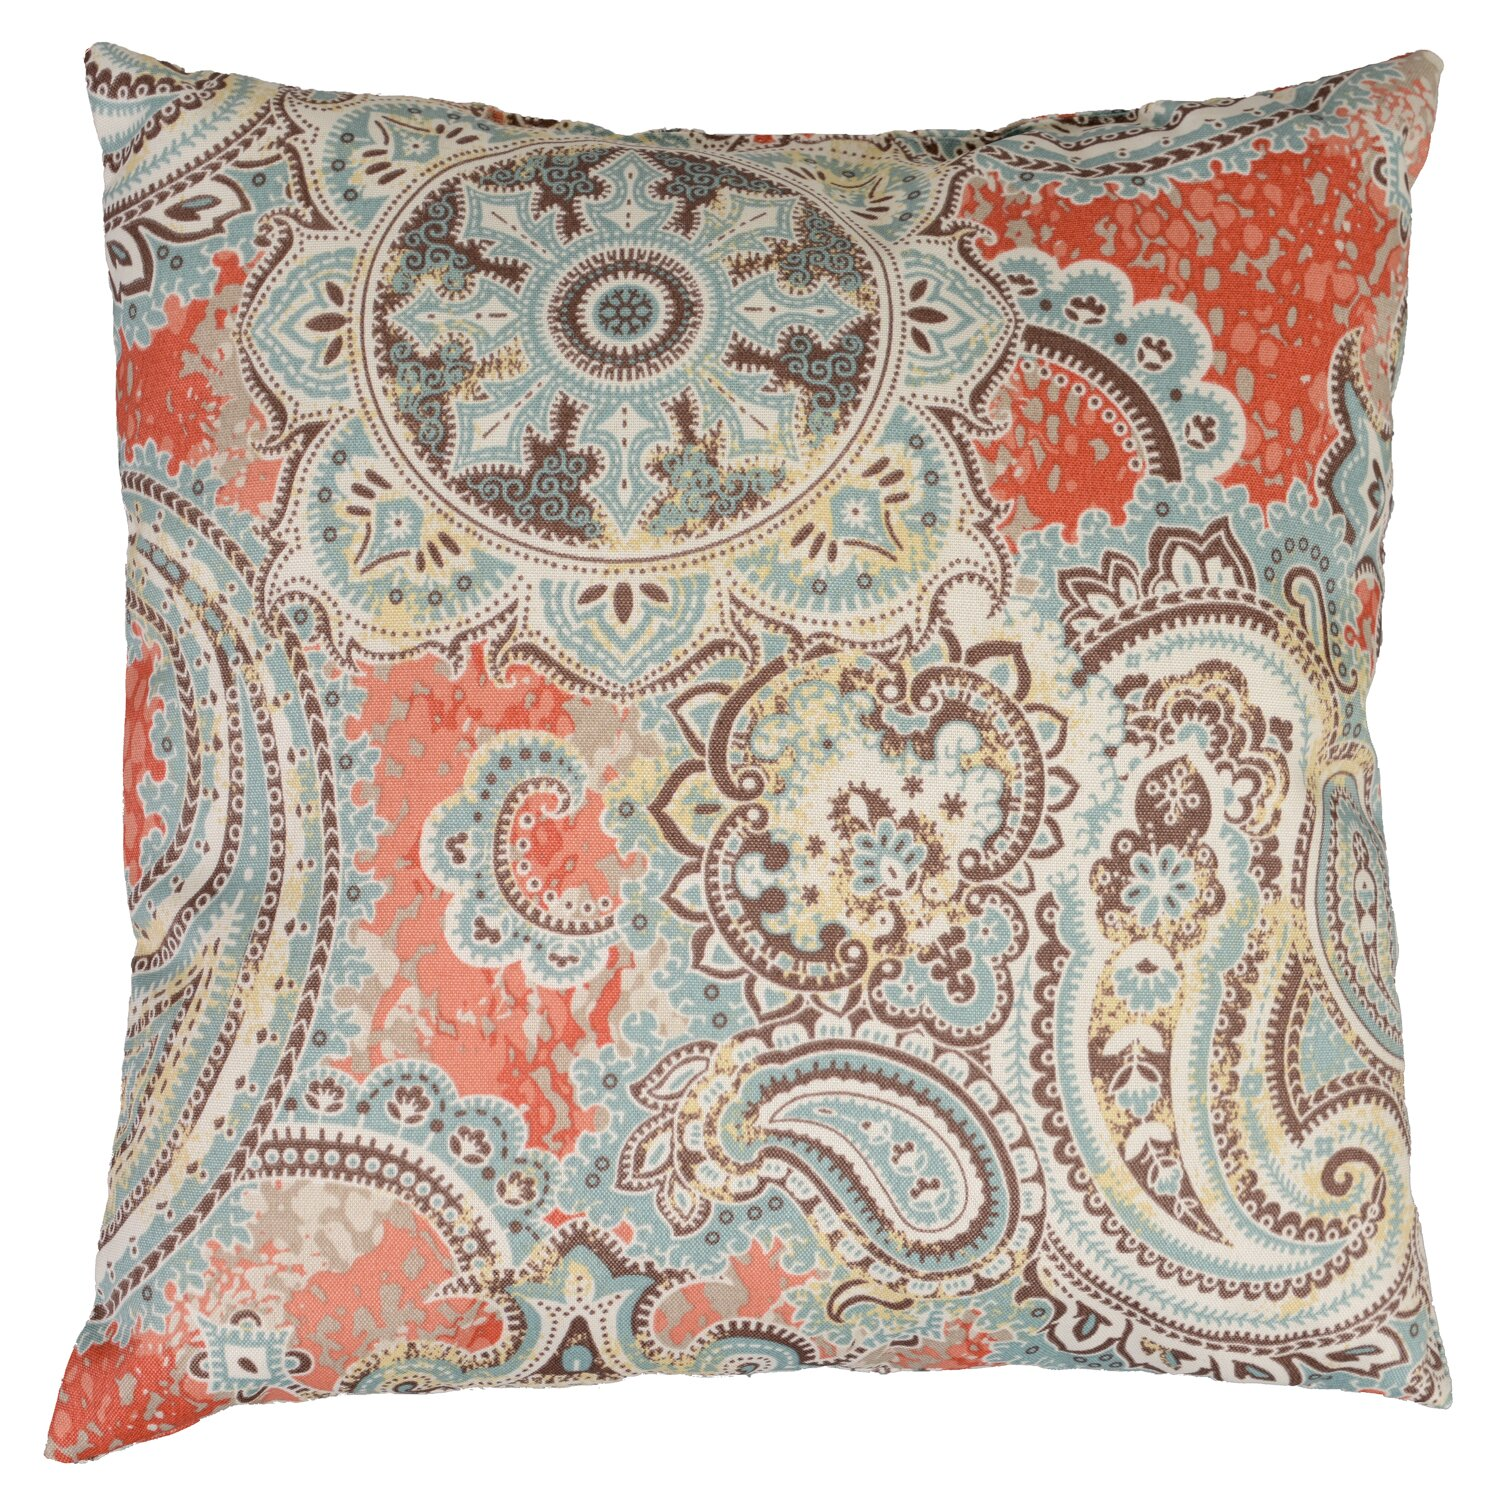 Decorative Pillow Wayfair : Swan Dye and Printing Houssie Throw Pillow & Reviews Wayfair